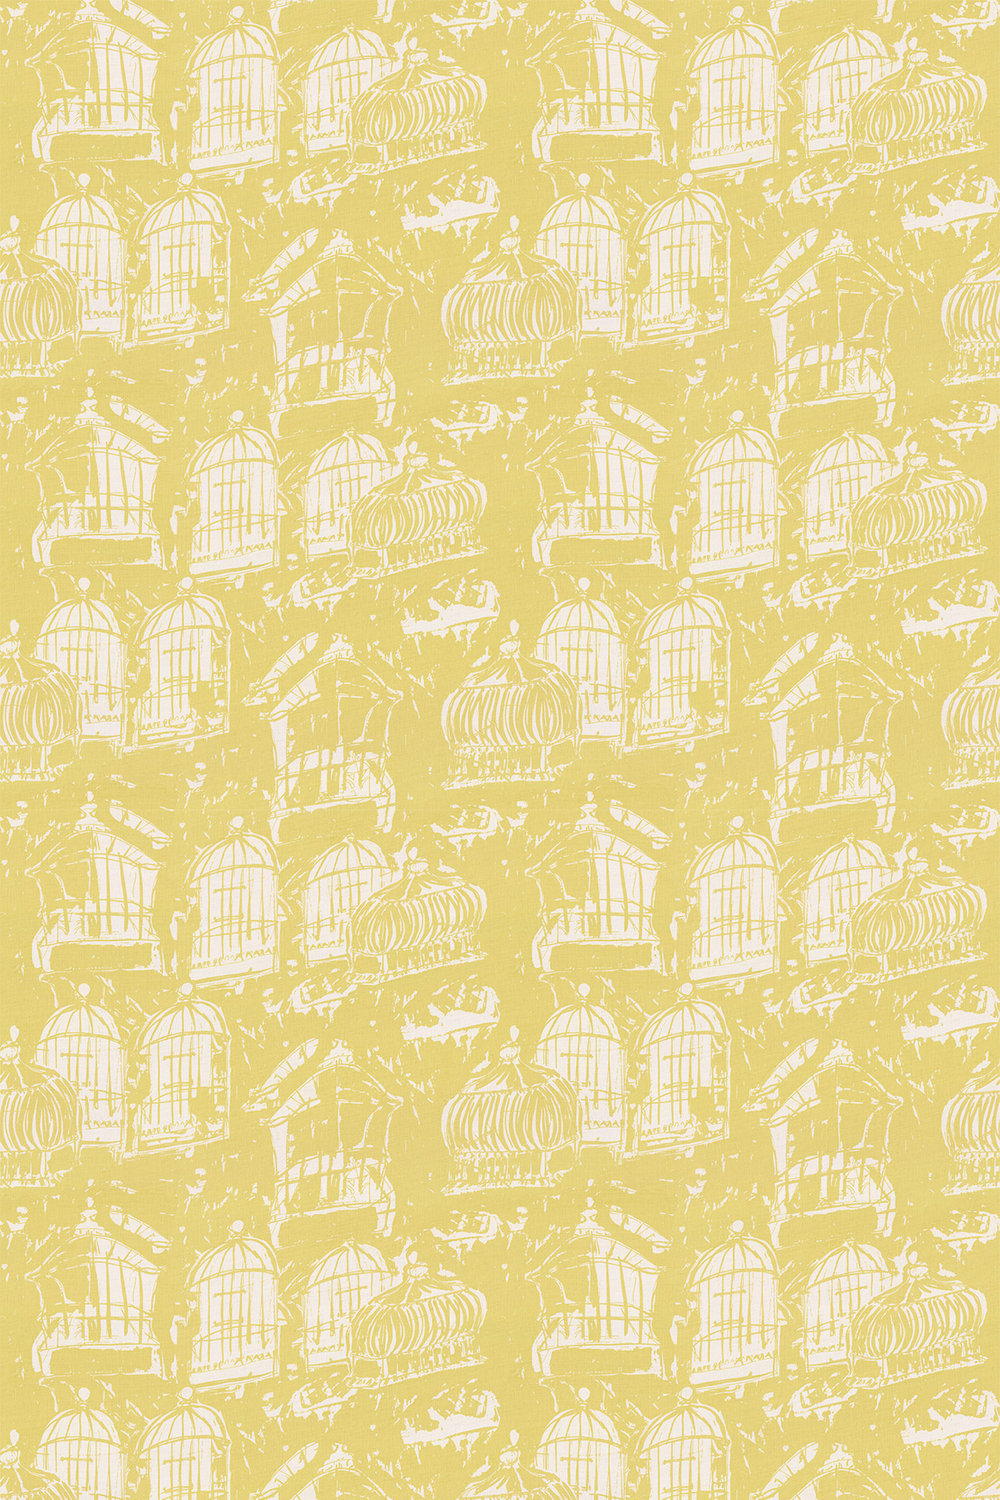 Belynda Sharples Linen Union Birdcage 02 Yellow Fabric - Product code: BS-LU-BC-02